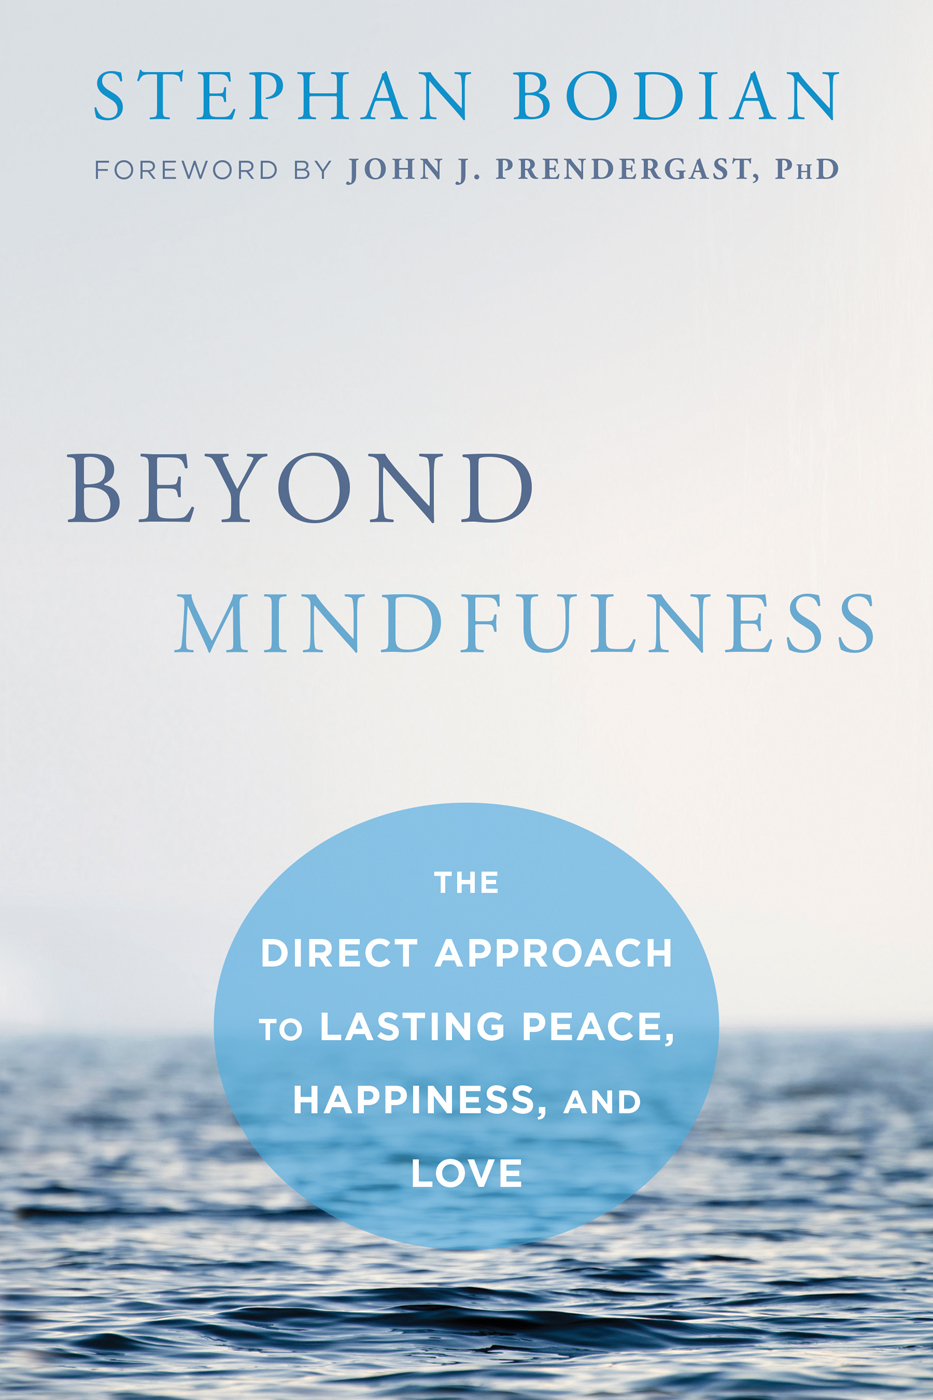 Beyond Mindfulness The Direct Approach to Lasting Peace, Happiness, and Love